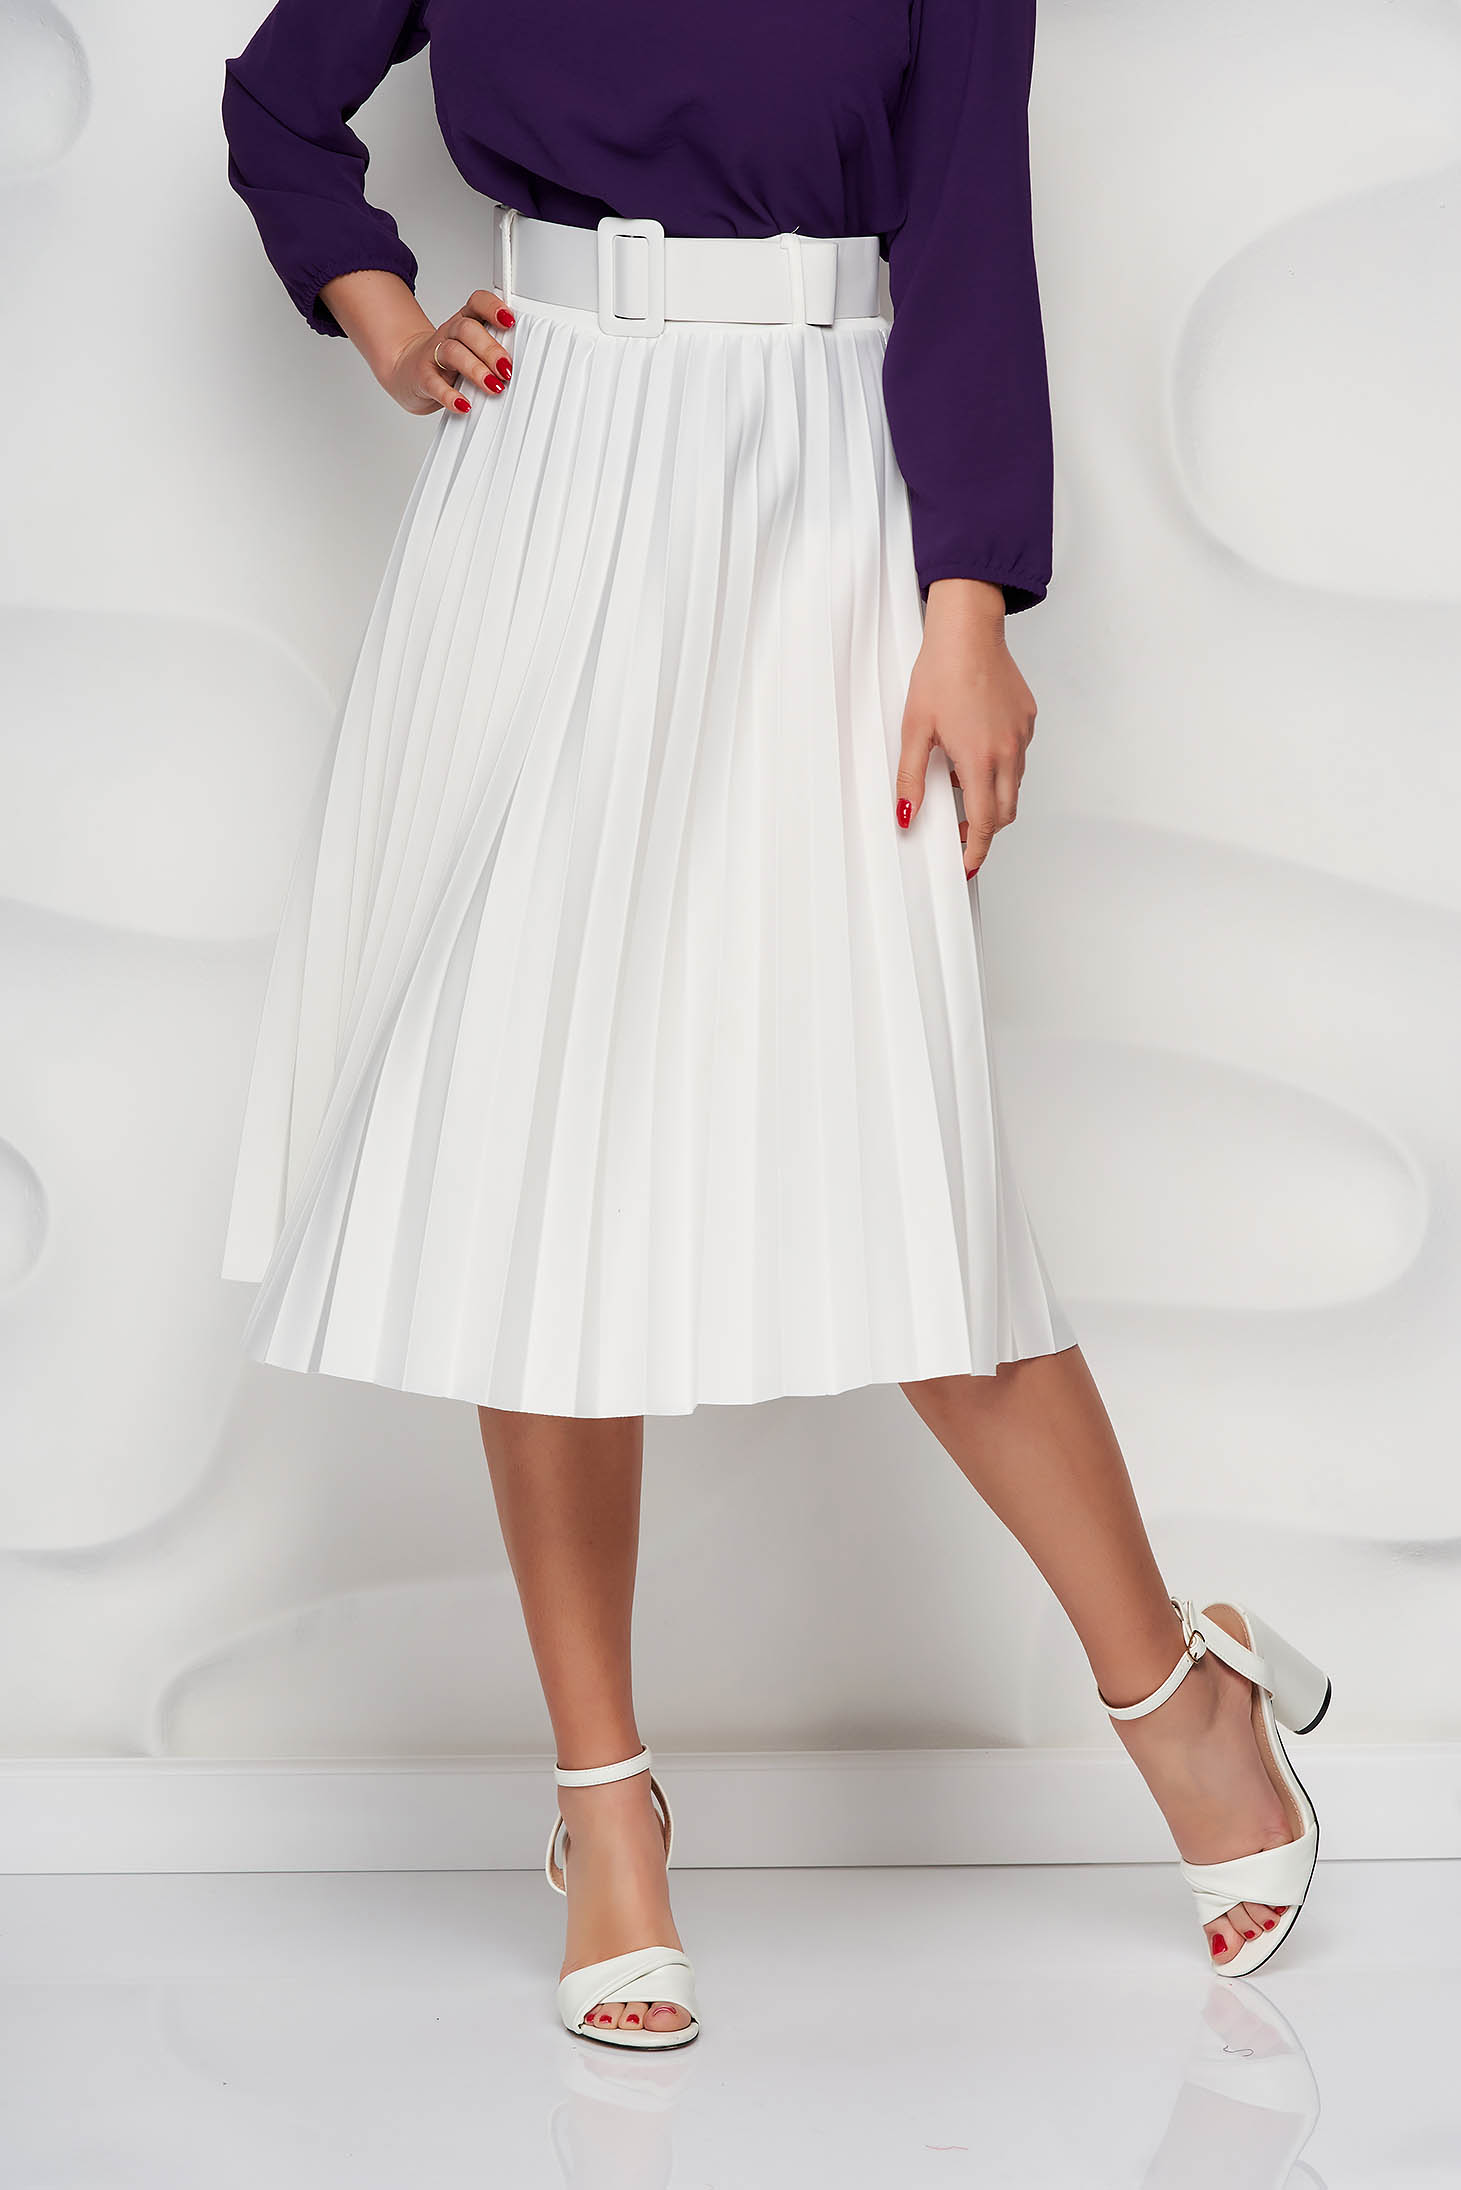 White skirt cloche accessorized with belt slightly elastic fabric folded up